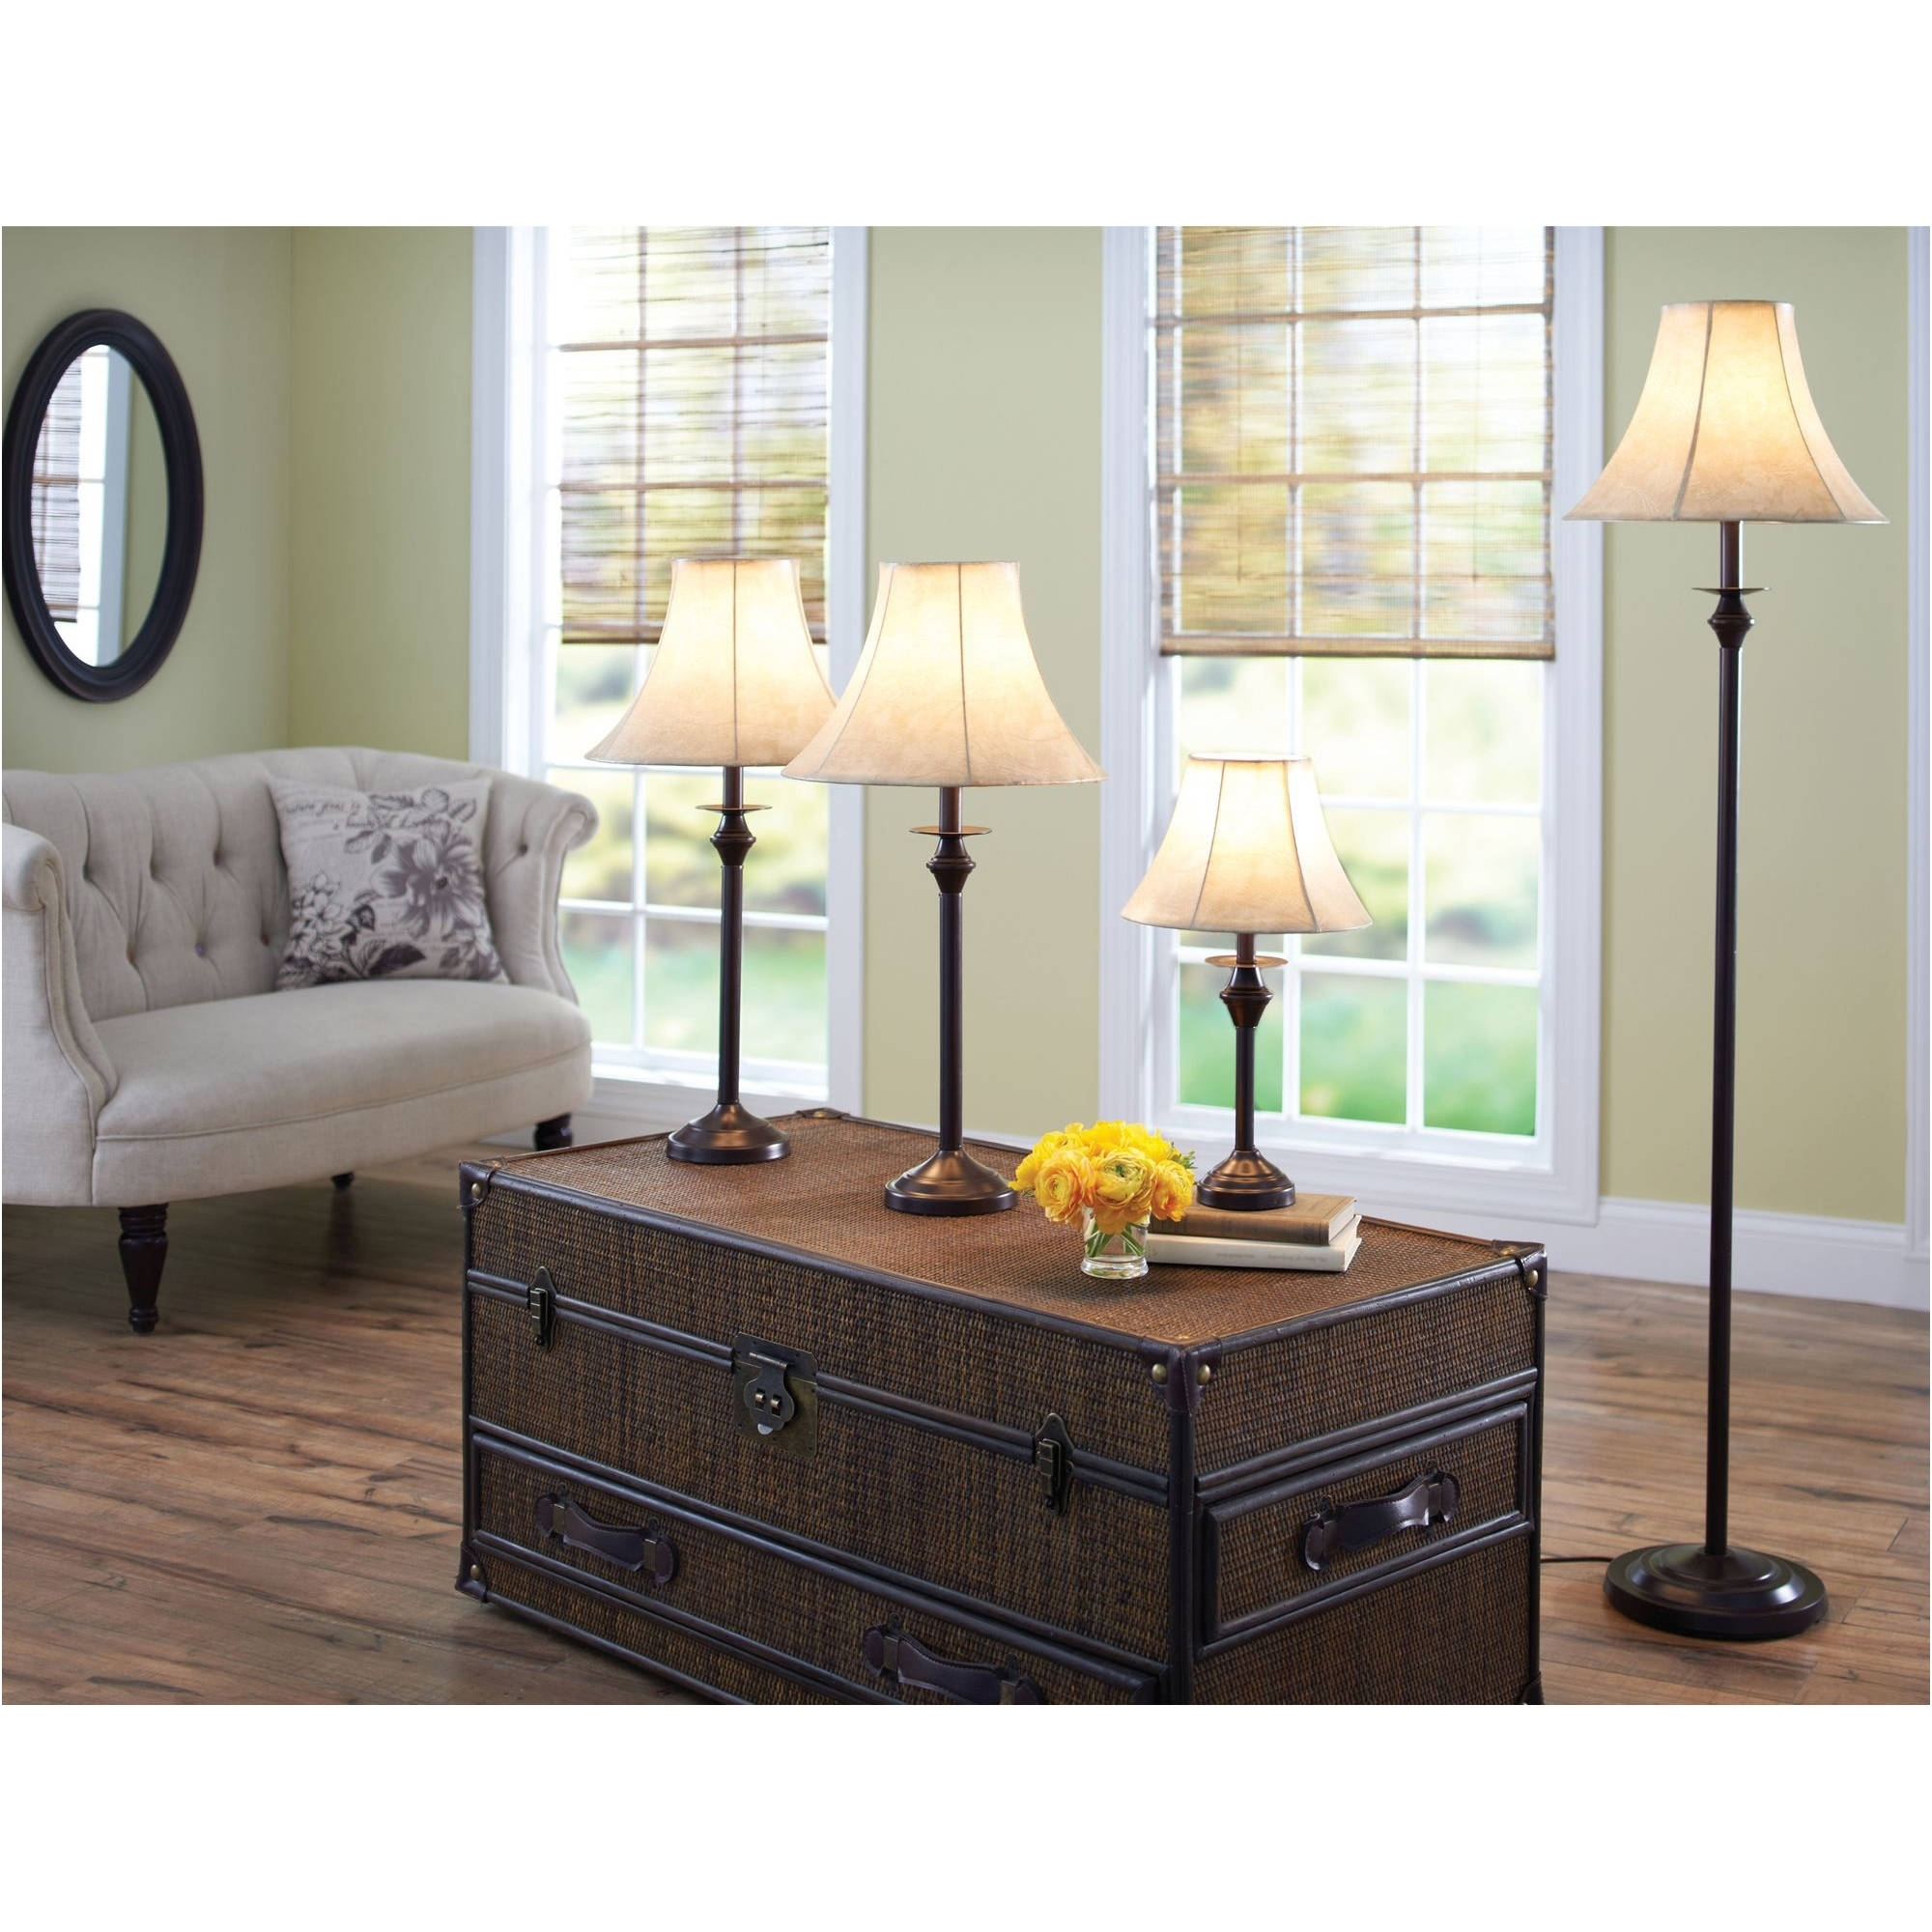 Walmart Desk Fan Design Ideas On Perfect The Best 100 Bronze Table Pertaining To Walmart Living Room Table Lamps (View 9 of 15)